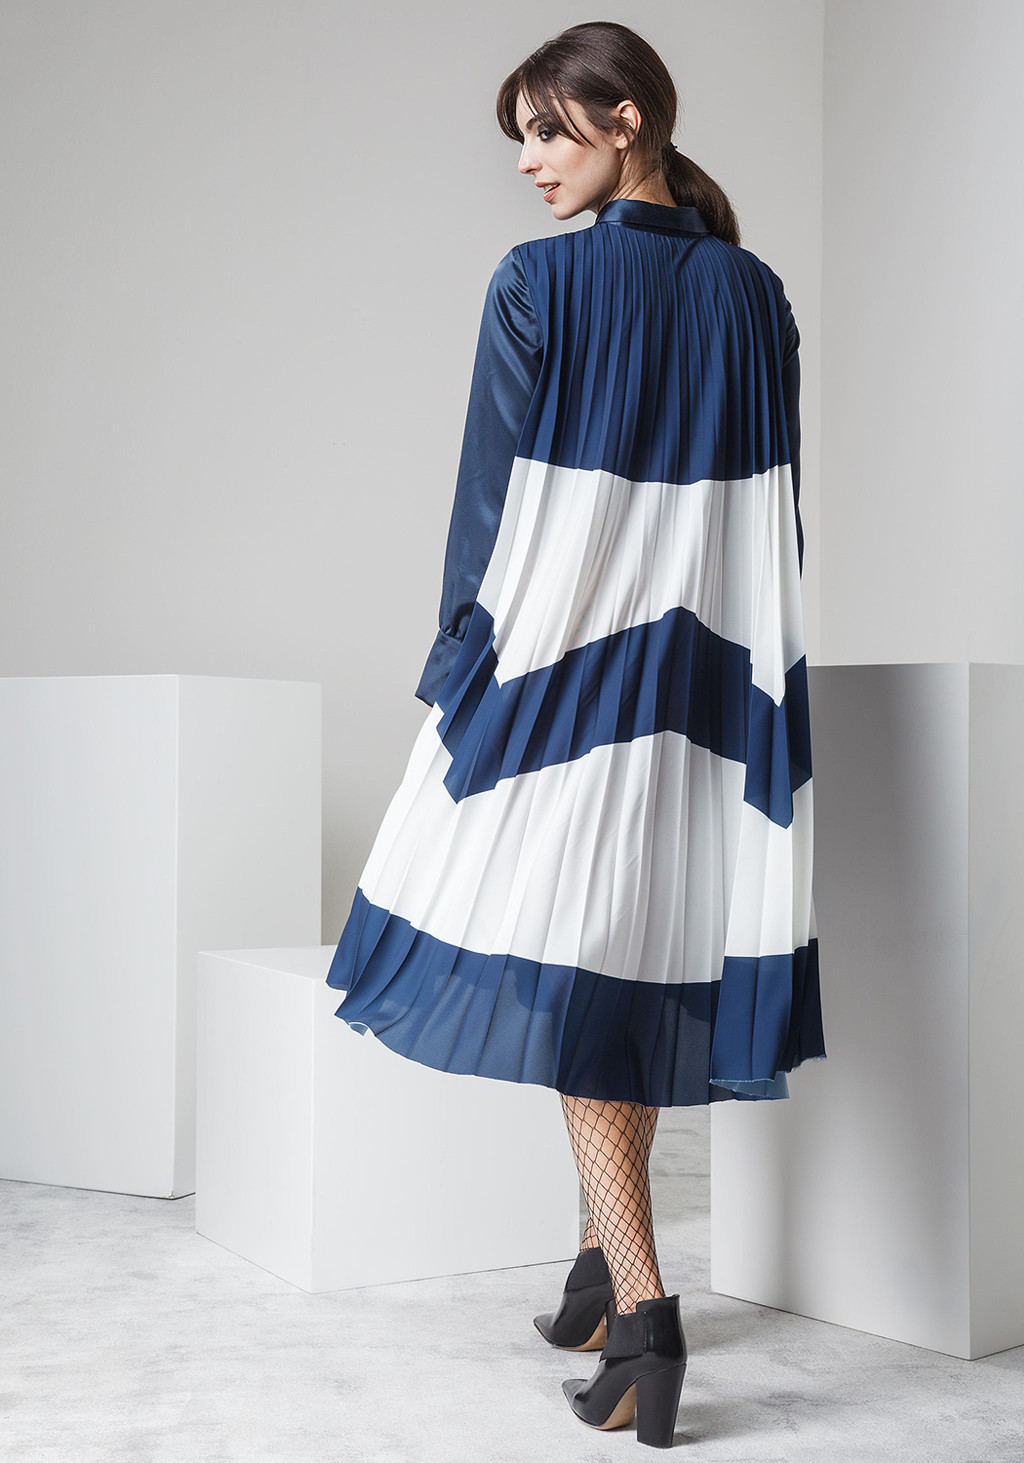 Silk shirt dress with pleted pannel on the back